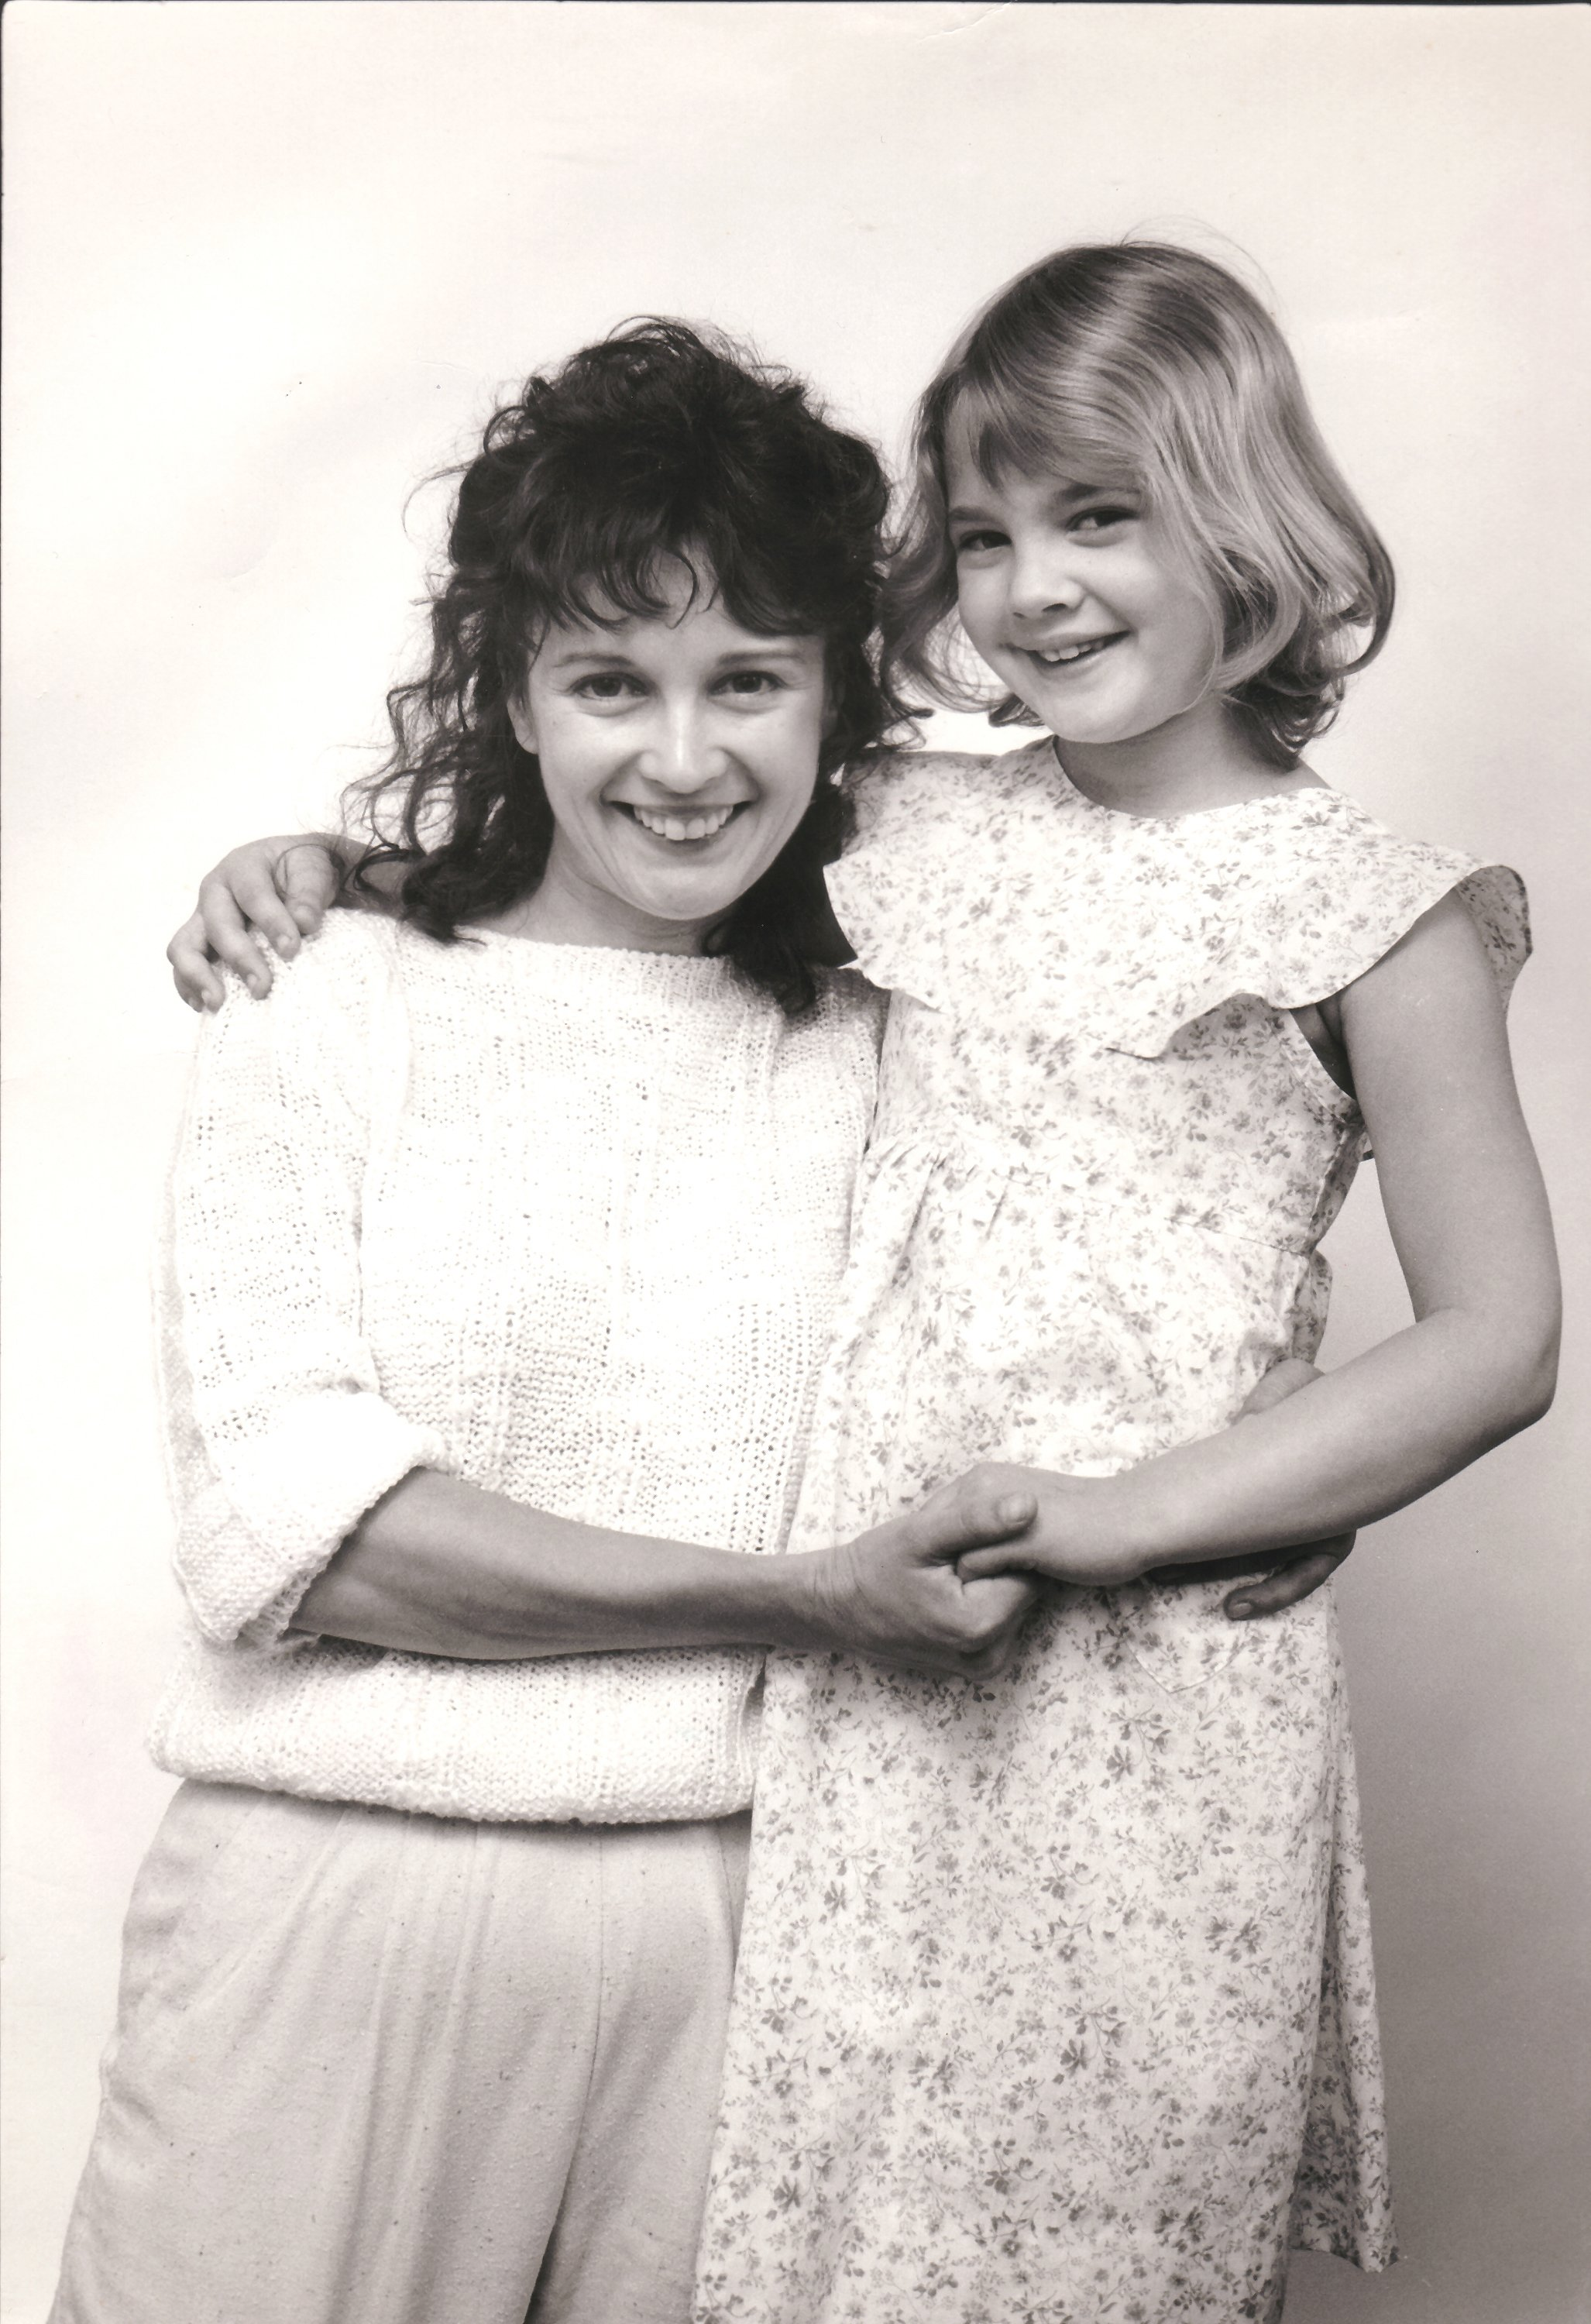 """Drew Barrymore with mother Jaid Barrymore. File photo promoting the motion picture """"E.T."""" in 1982 